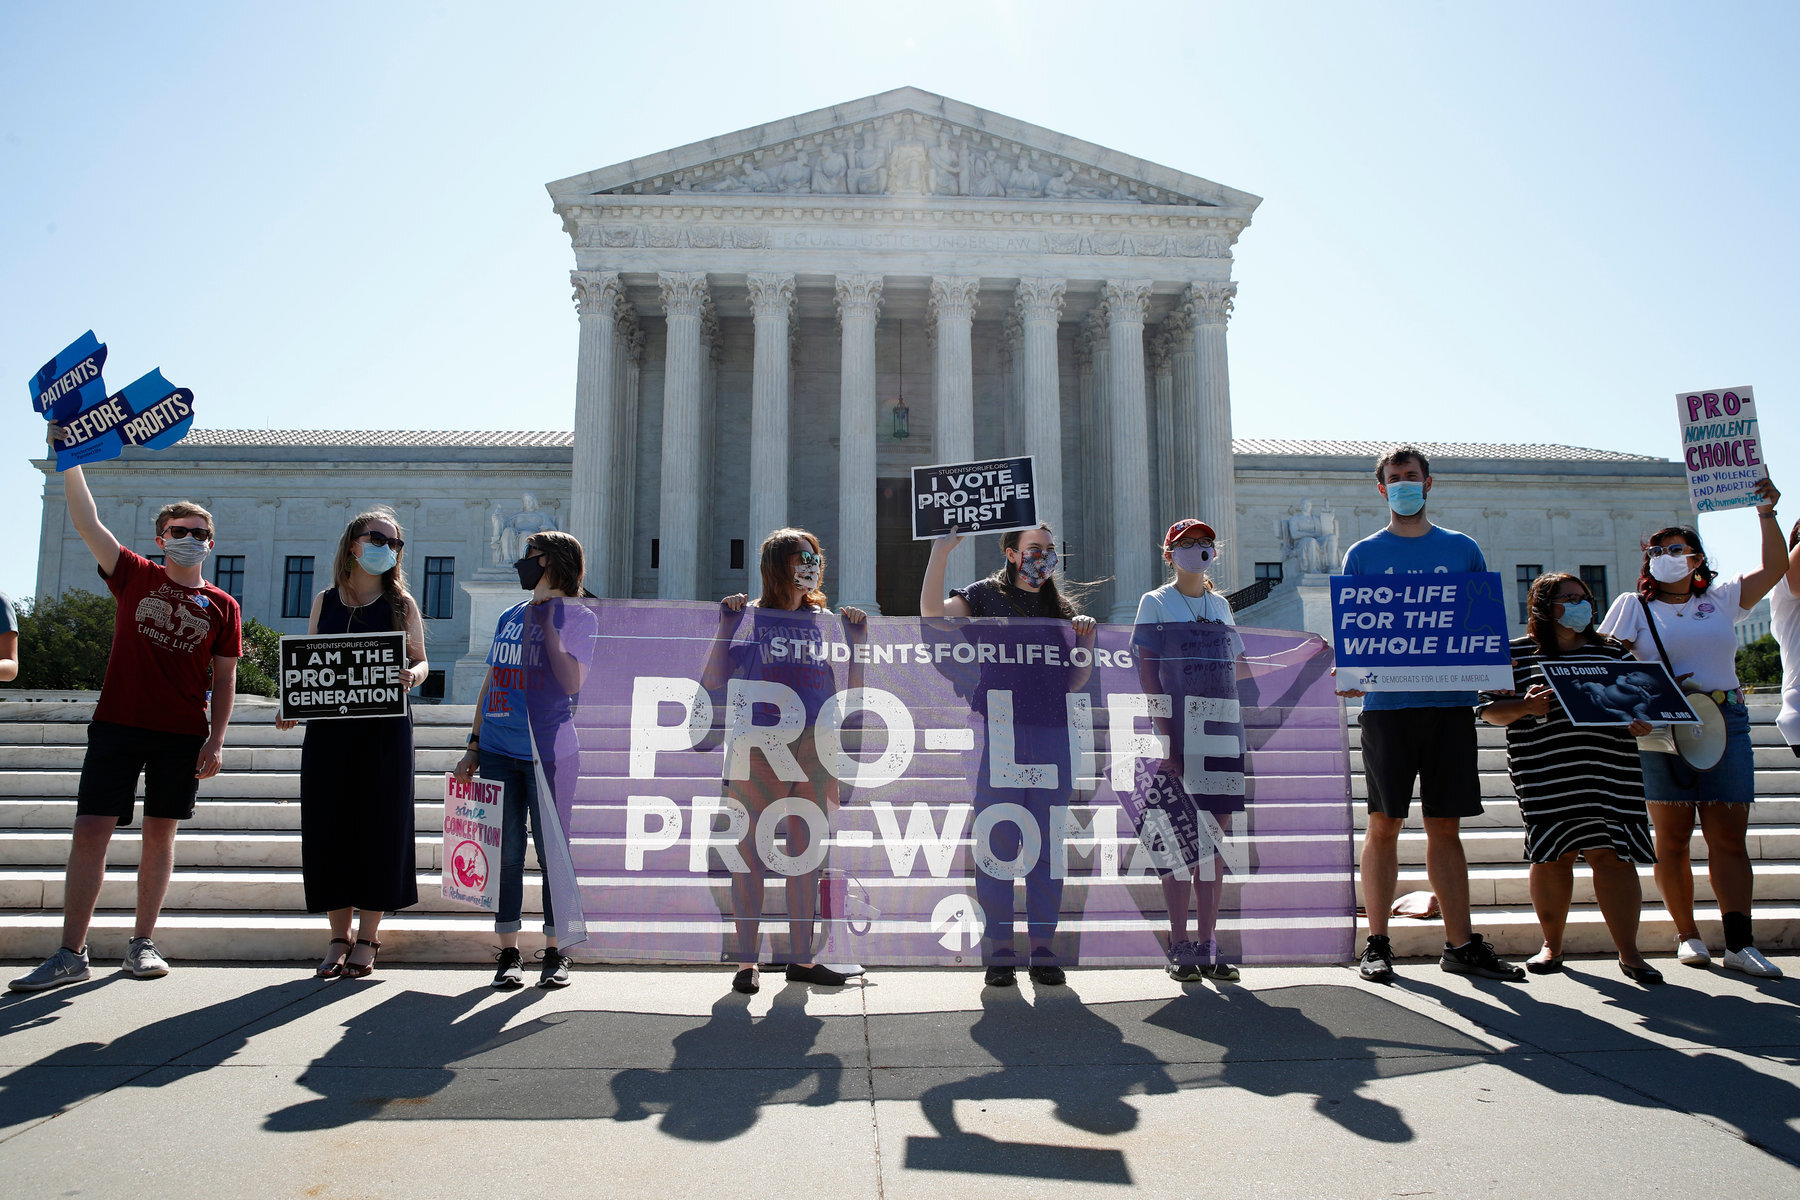 21.05.2021 – US Supreme Court agree to hear case that could overturn Roe v. Wade